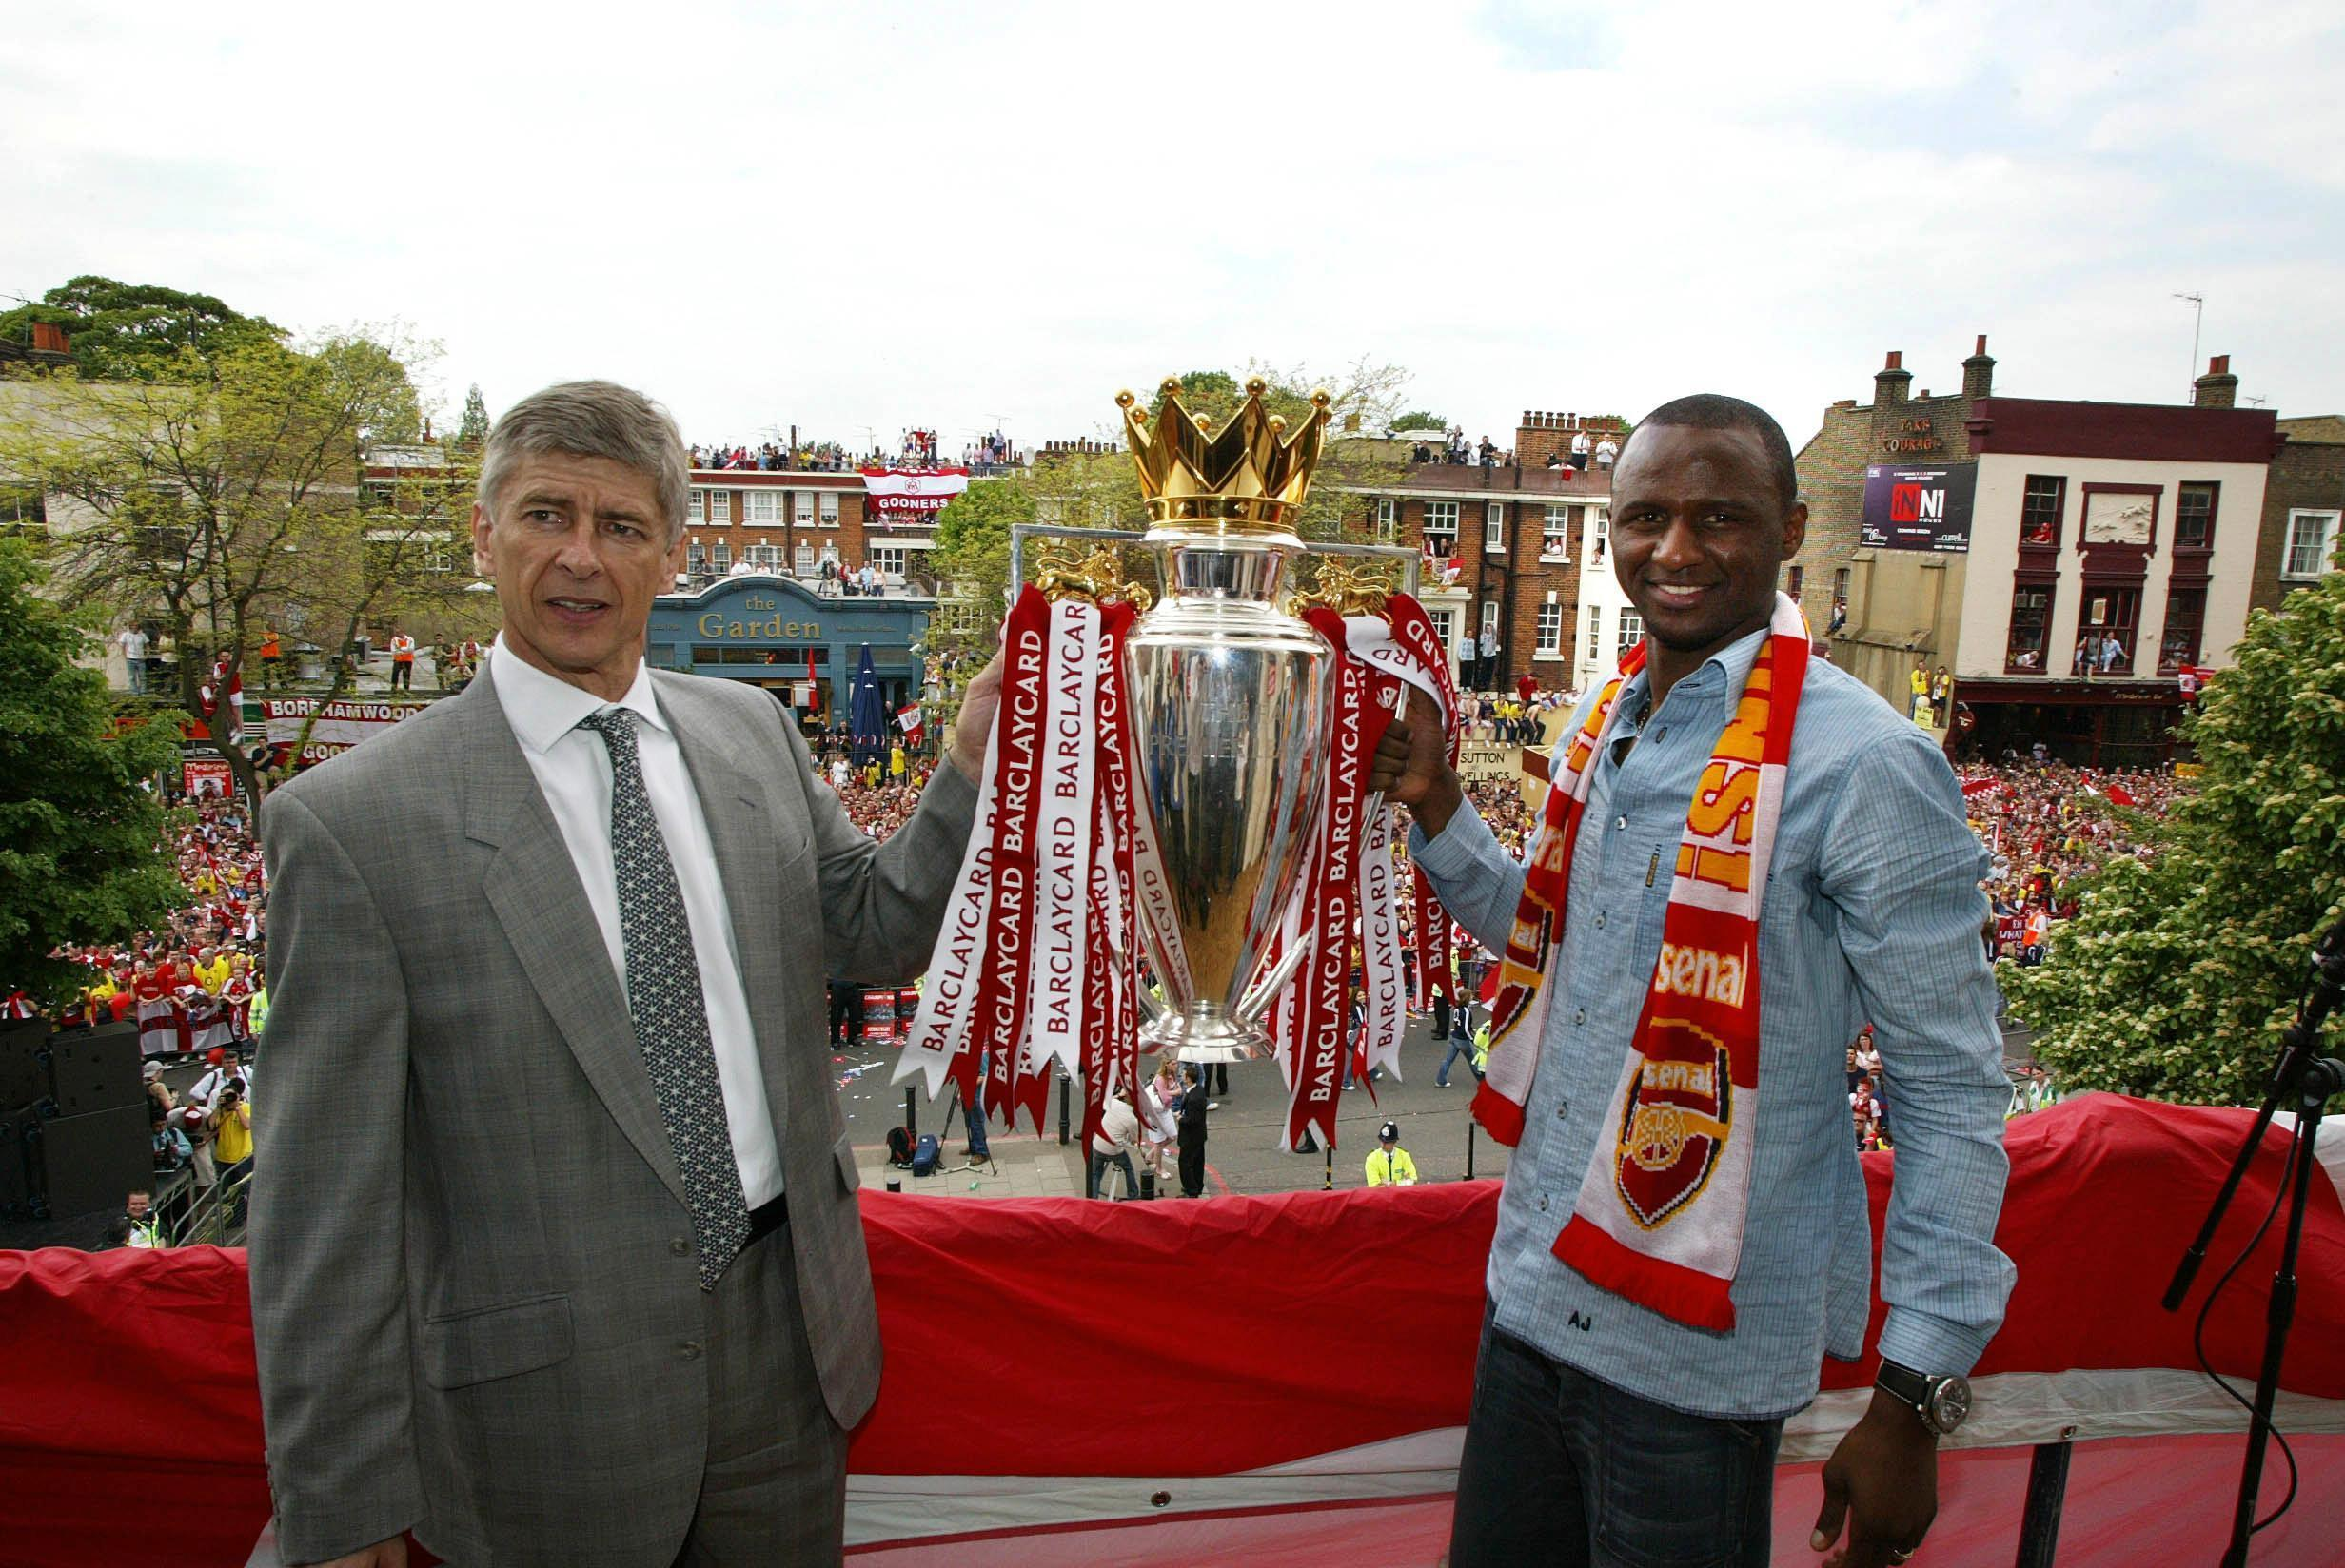 Patrick Vieira and Arsene Wenger (PA ROTA/PA Wire)